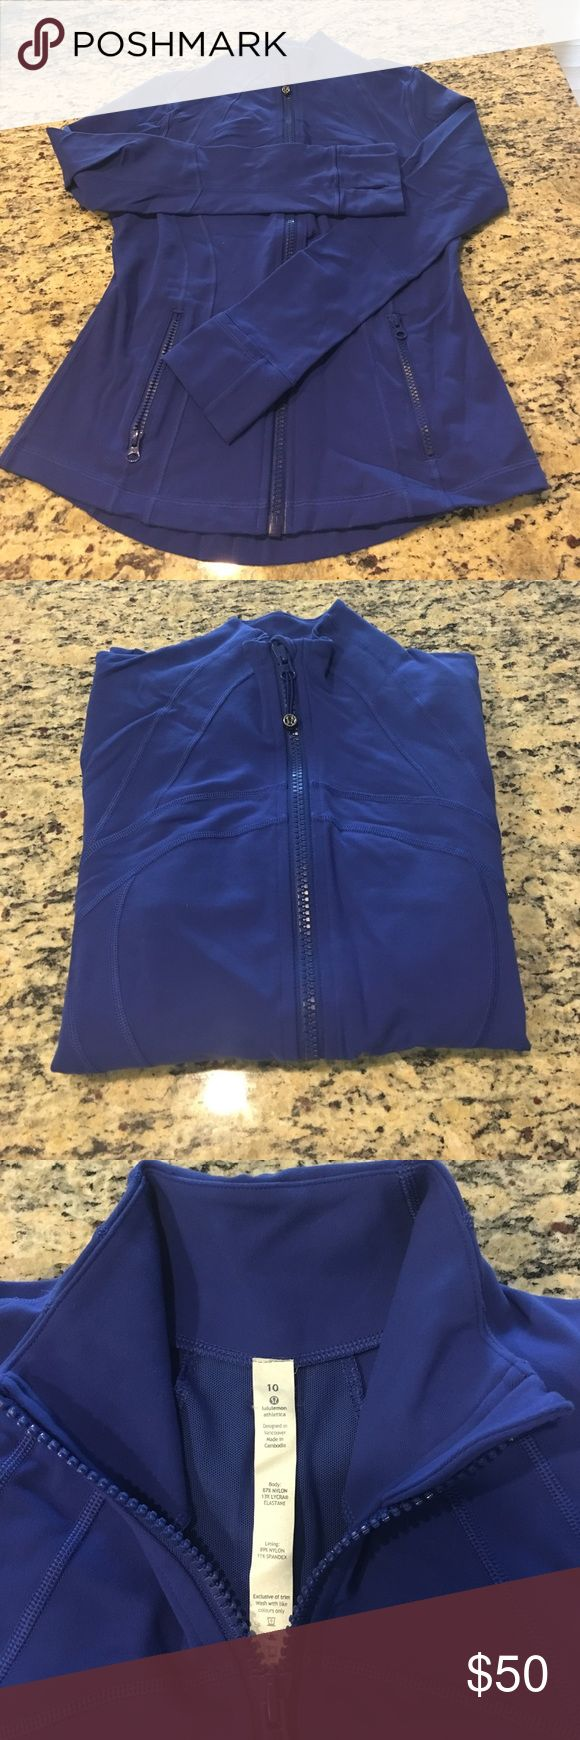 Lululemon Define Jacket Cobalt blue, lightweight work out jacket! Worn once and in pretty much brand-new condition. The closet cleanse continues! lululemon athletica Other